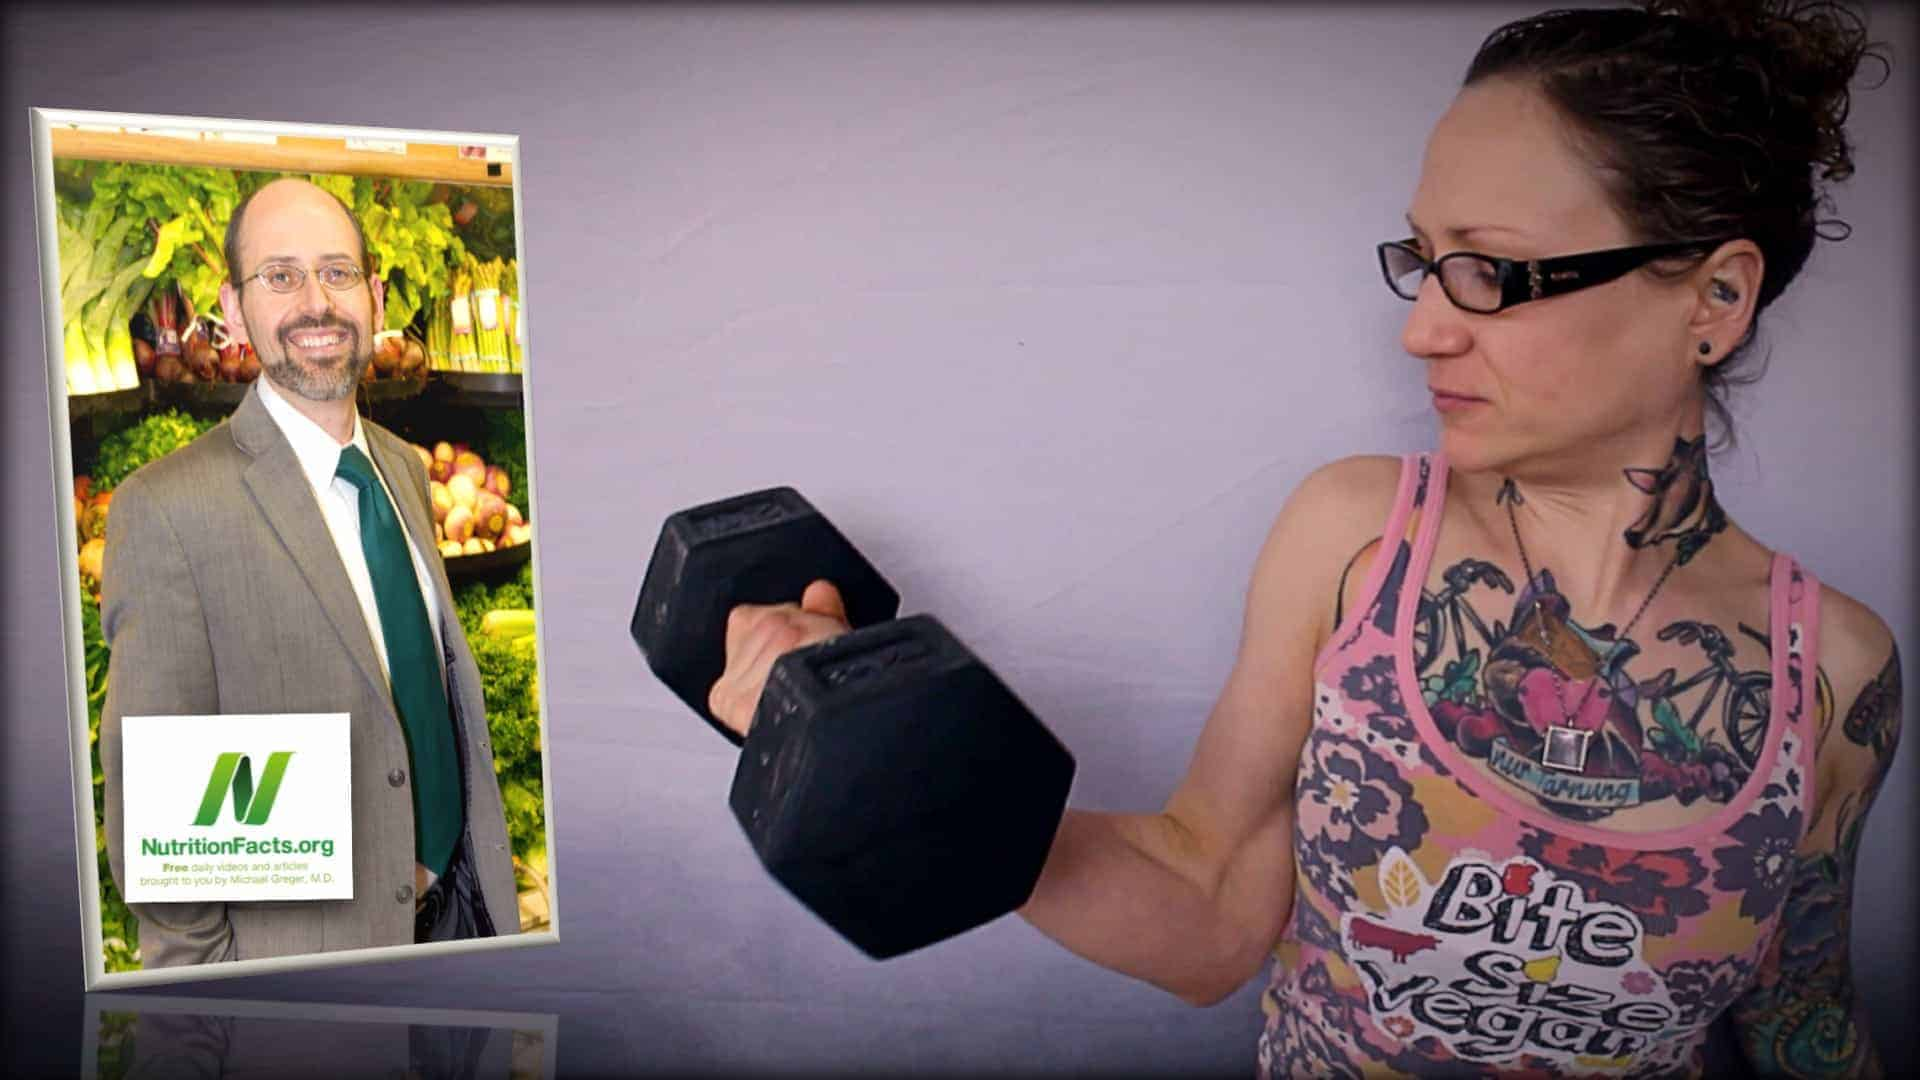 Dr. Greger of NutritionFacts.org is seen as an inset photograph on the left. On the right, Emily Moran Barwick of Bite Size Vegan is seen carrying out an arm curl with a large iron dumbbell.